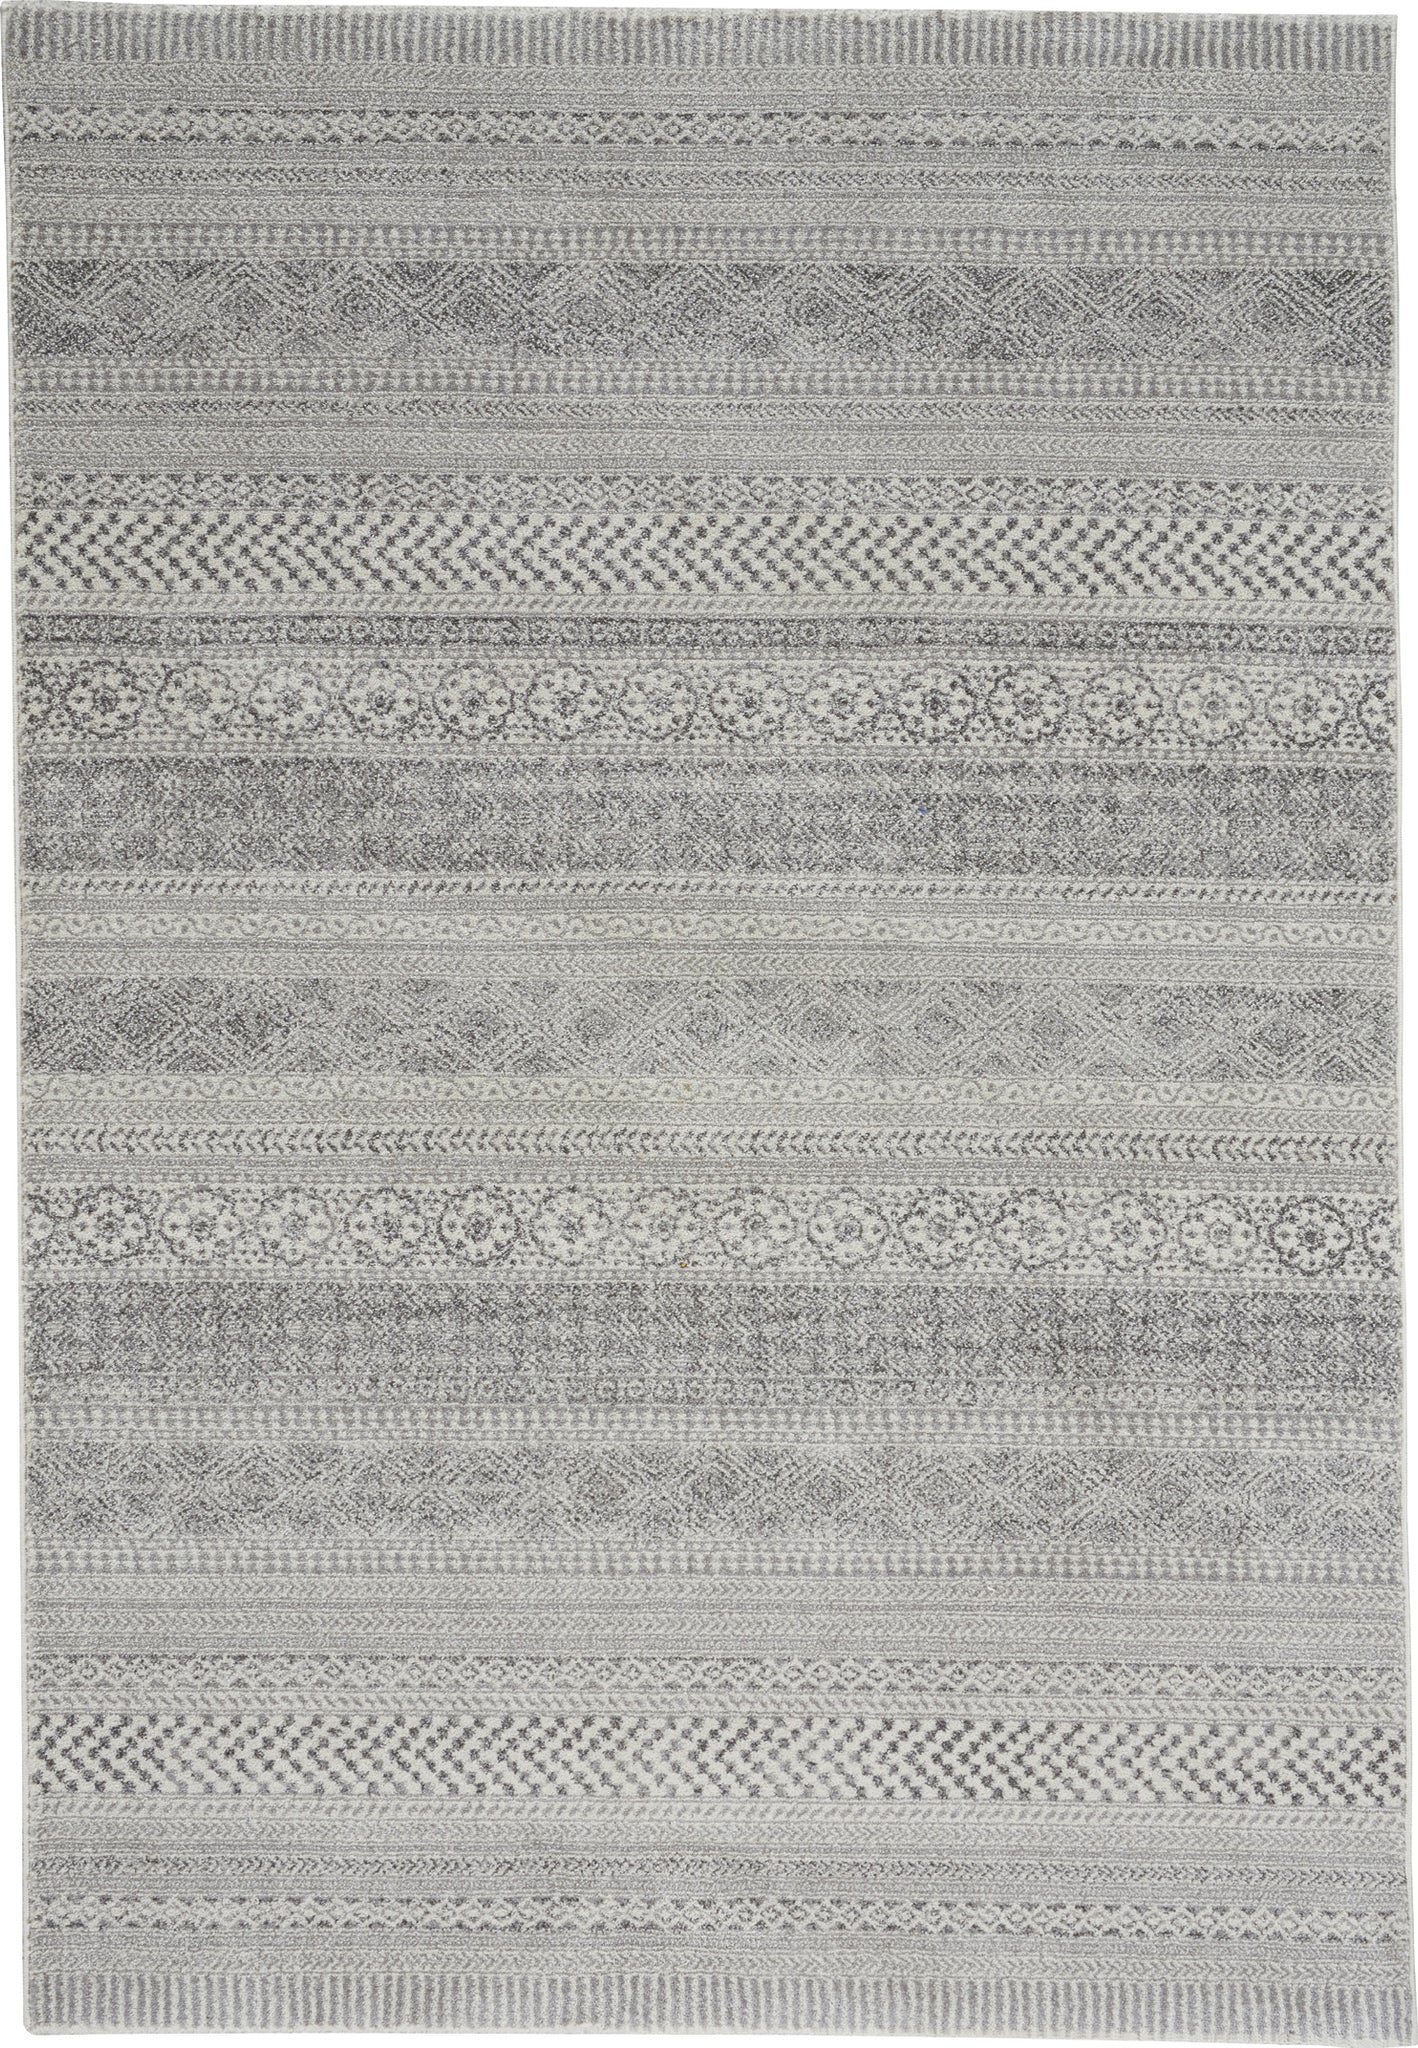 Capel Channel 4742 Nickel Area Rug main image